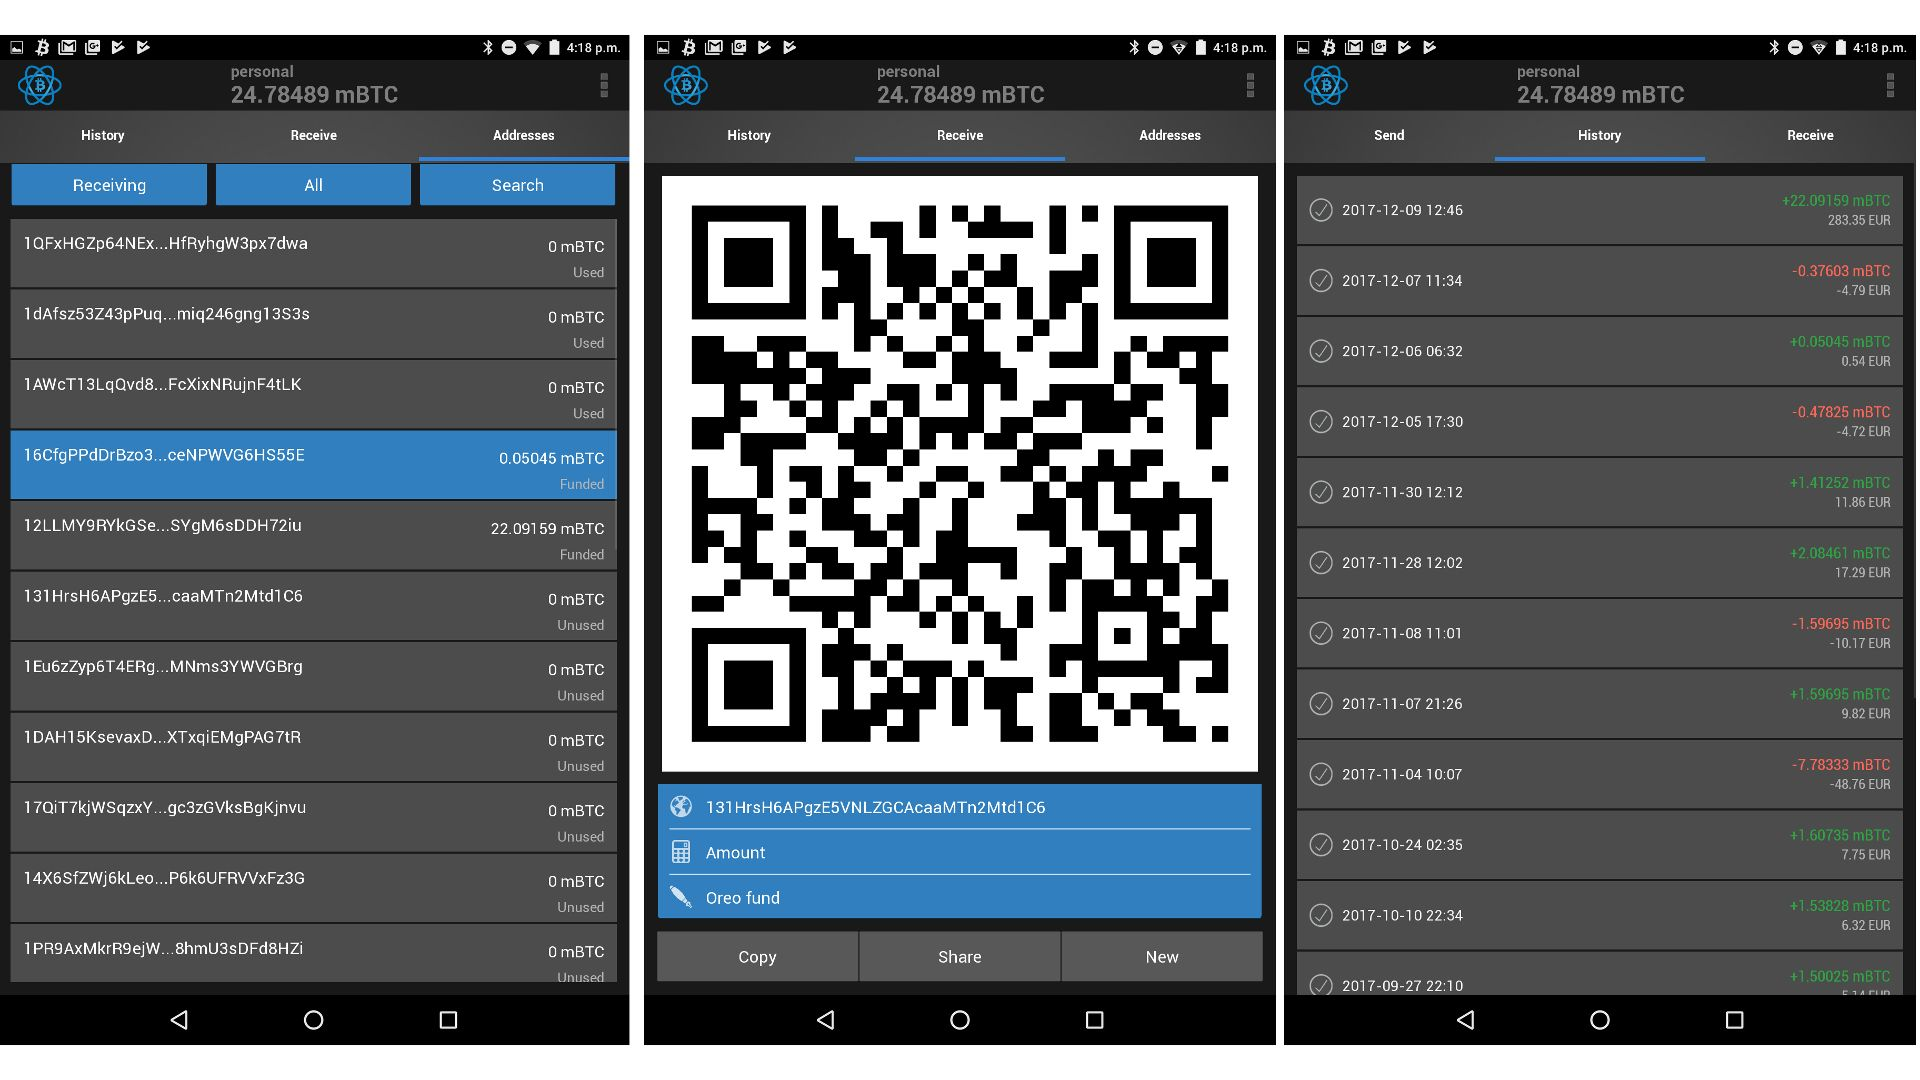 Best Bitcoin wallets for Android in 2018 (With images